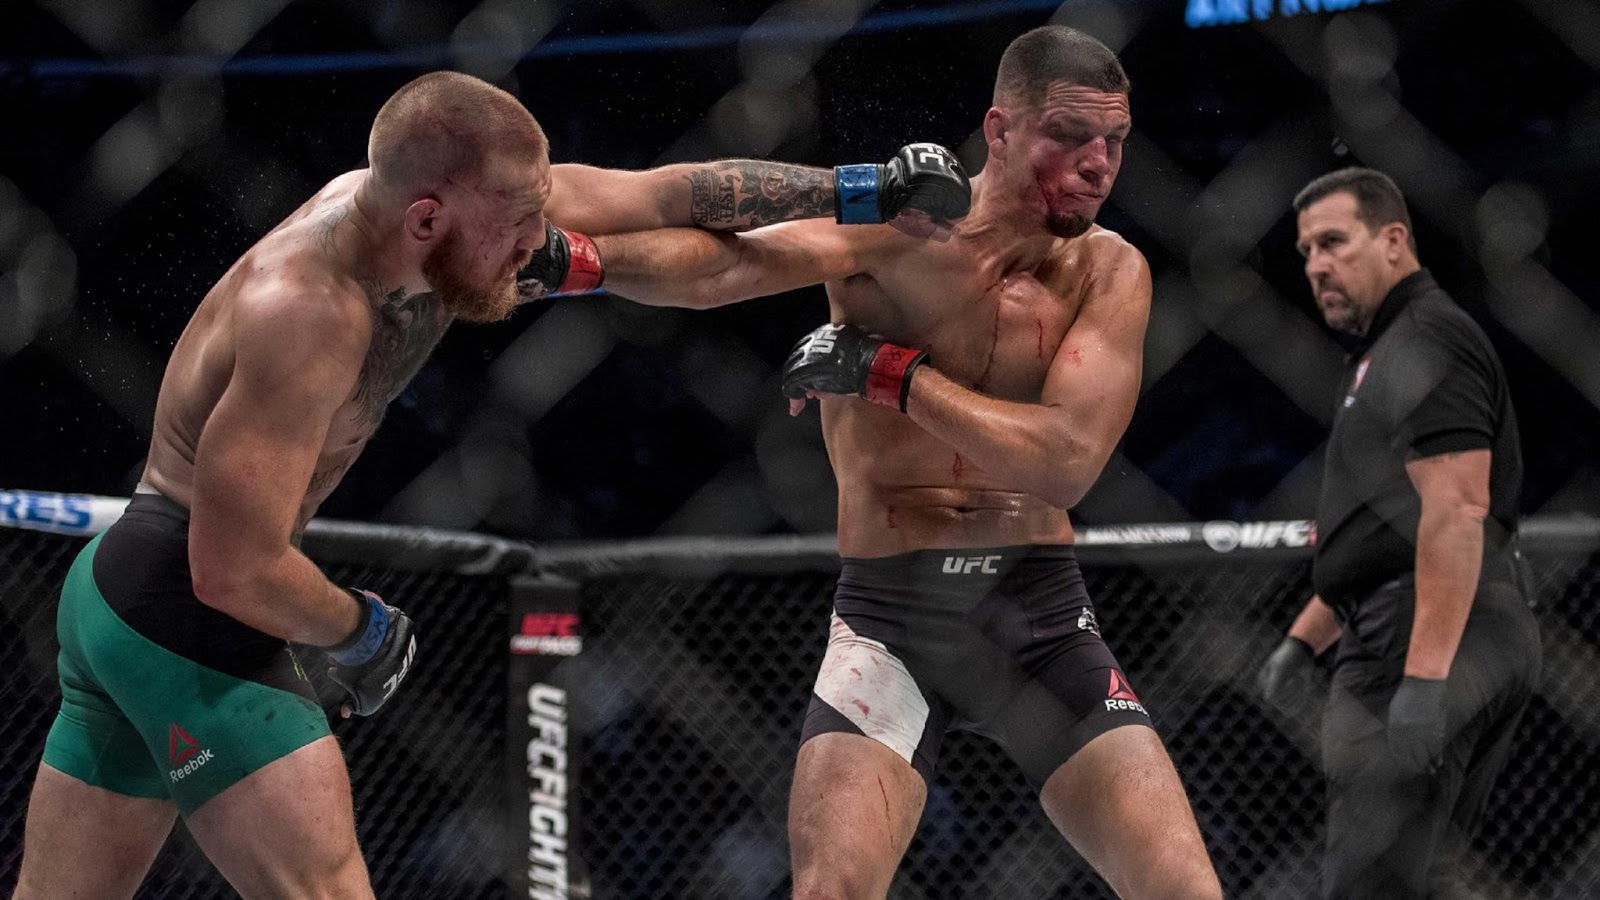 CONOR MCGREGOR VS. NATE DIAZ 14